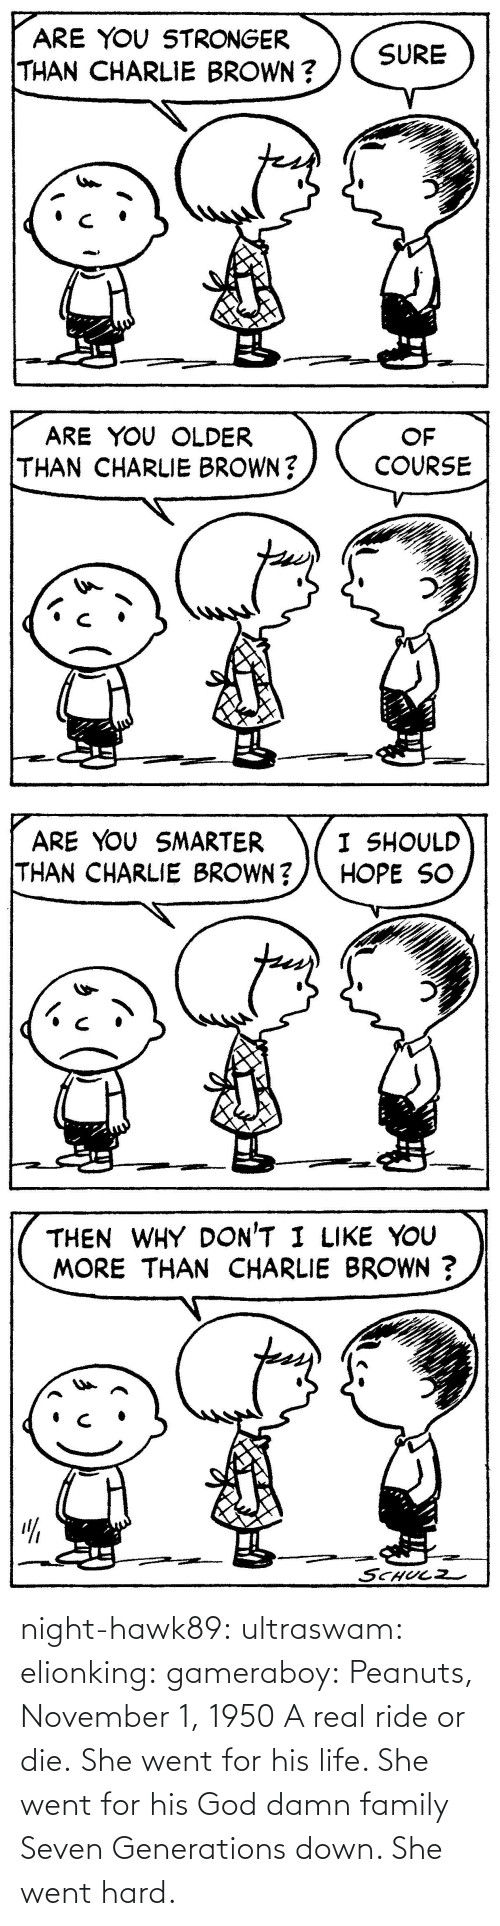 ride: night-hawk89: ultraswam:  elionking:  gameraboy:  Peanuts, November 1, 1950     A real ride or die.   She went for his life. She went for his God damn family Seven Generations down. She went hard.